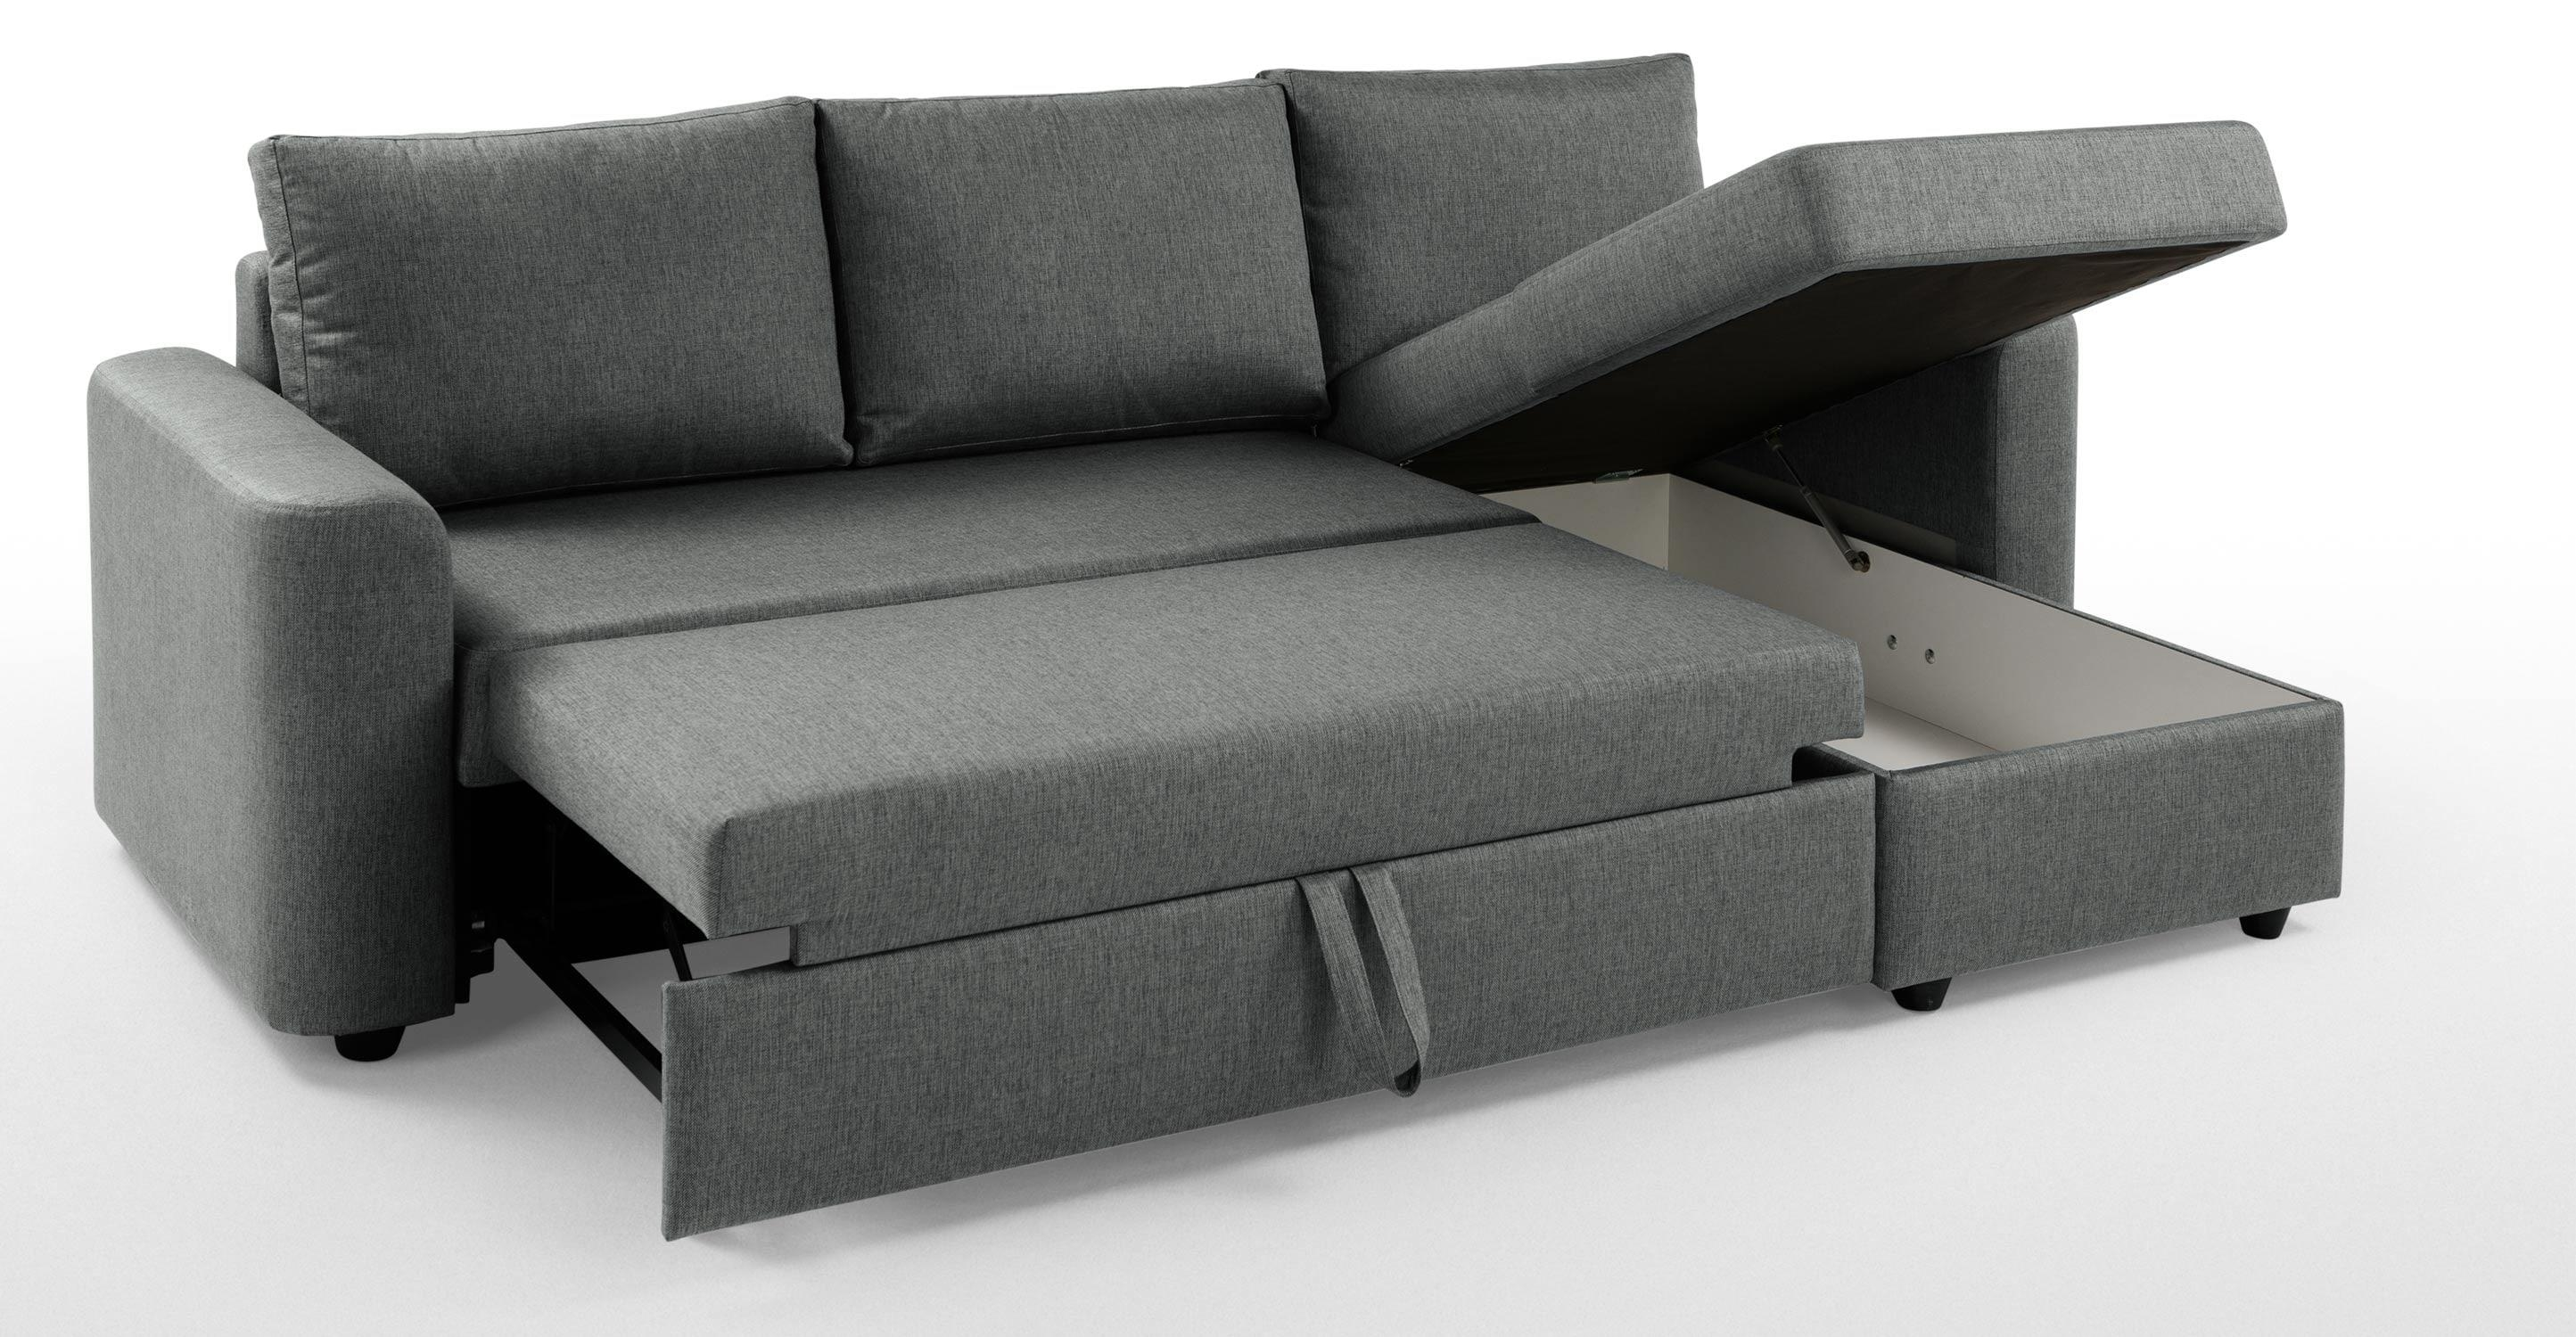 20 Choices Of Sofa Beds With Storage Chaise Sofa Ideas